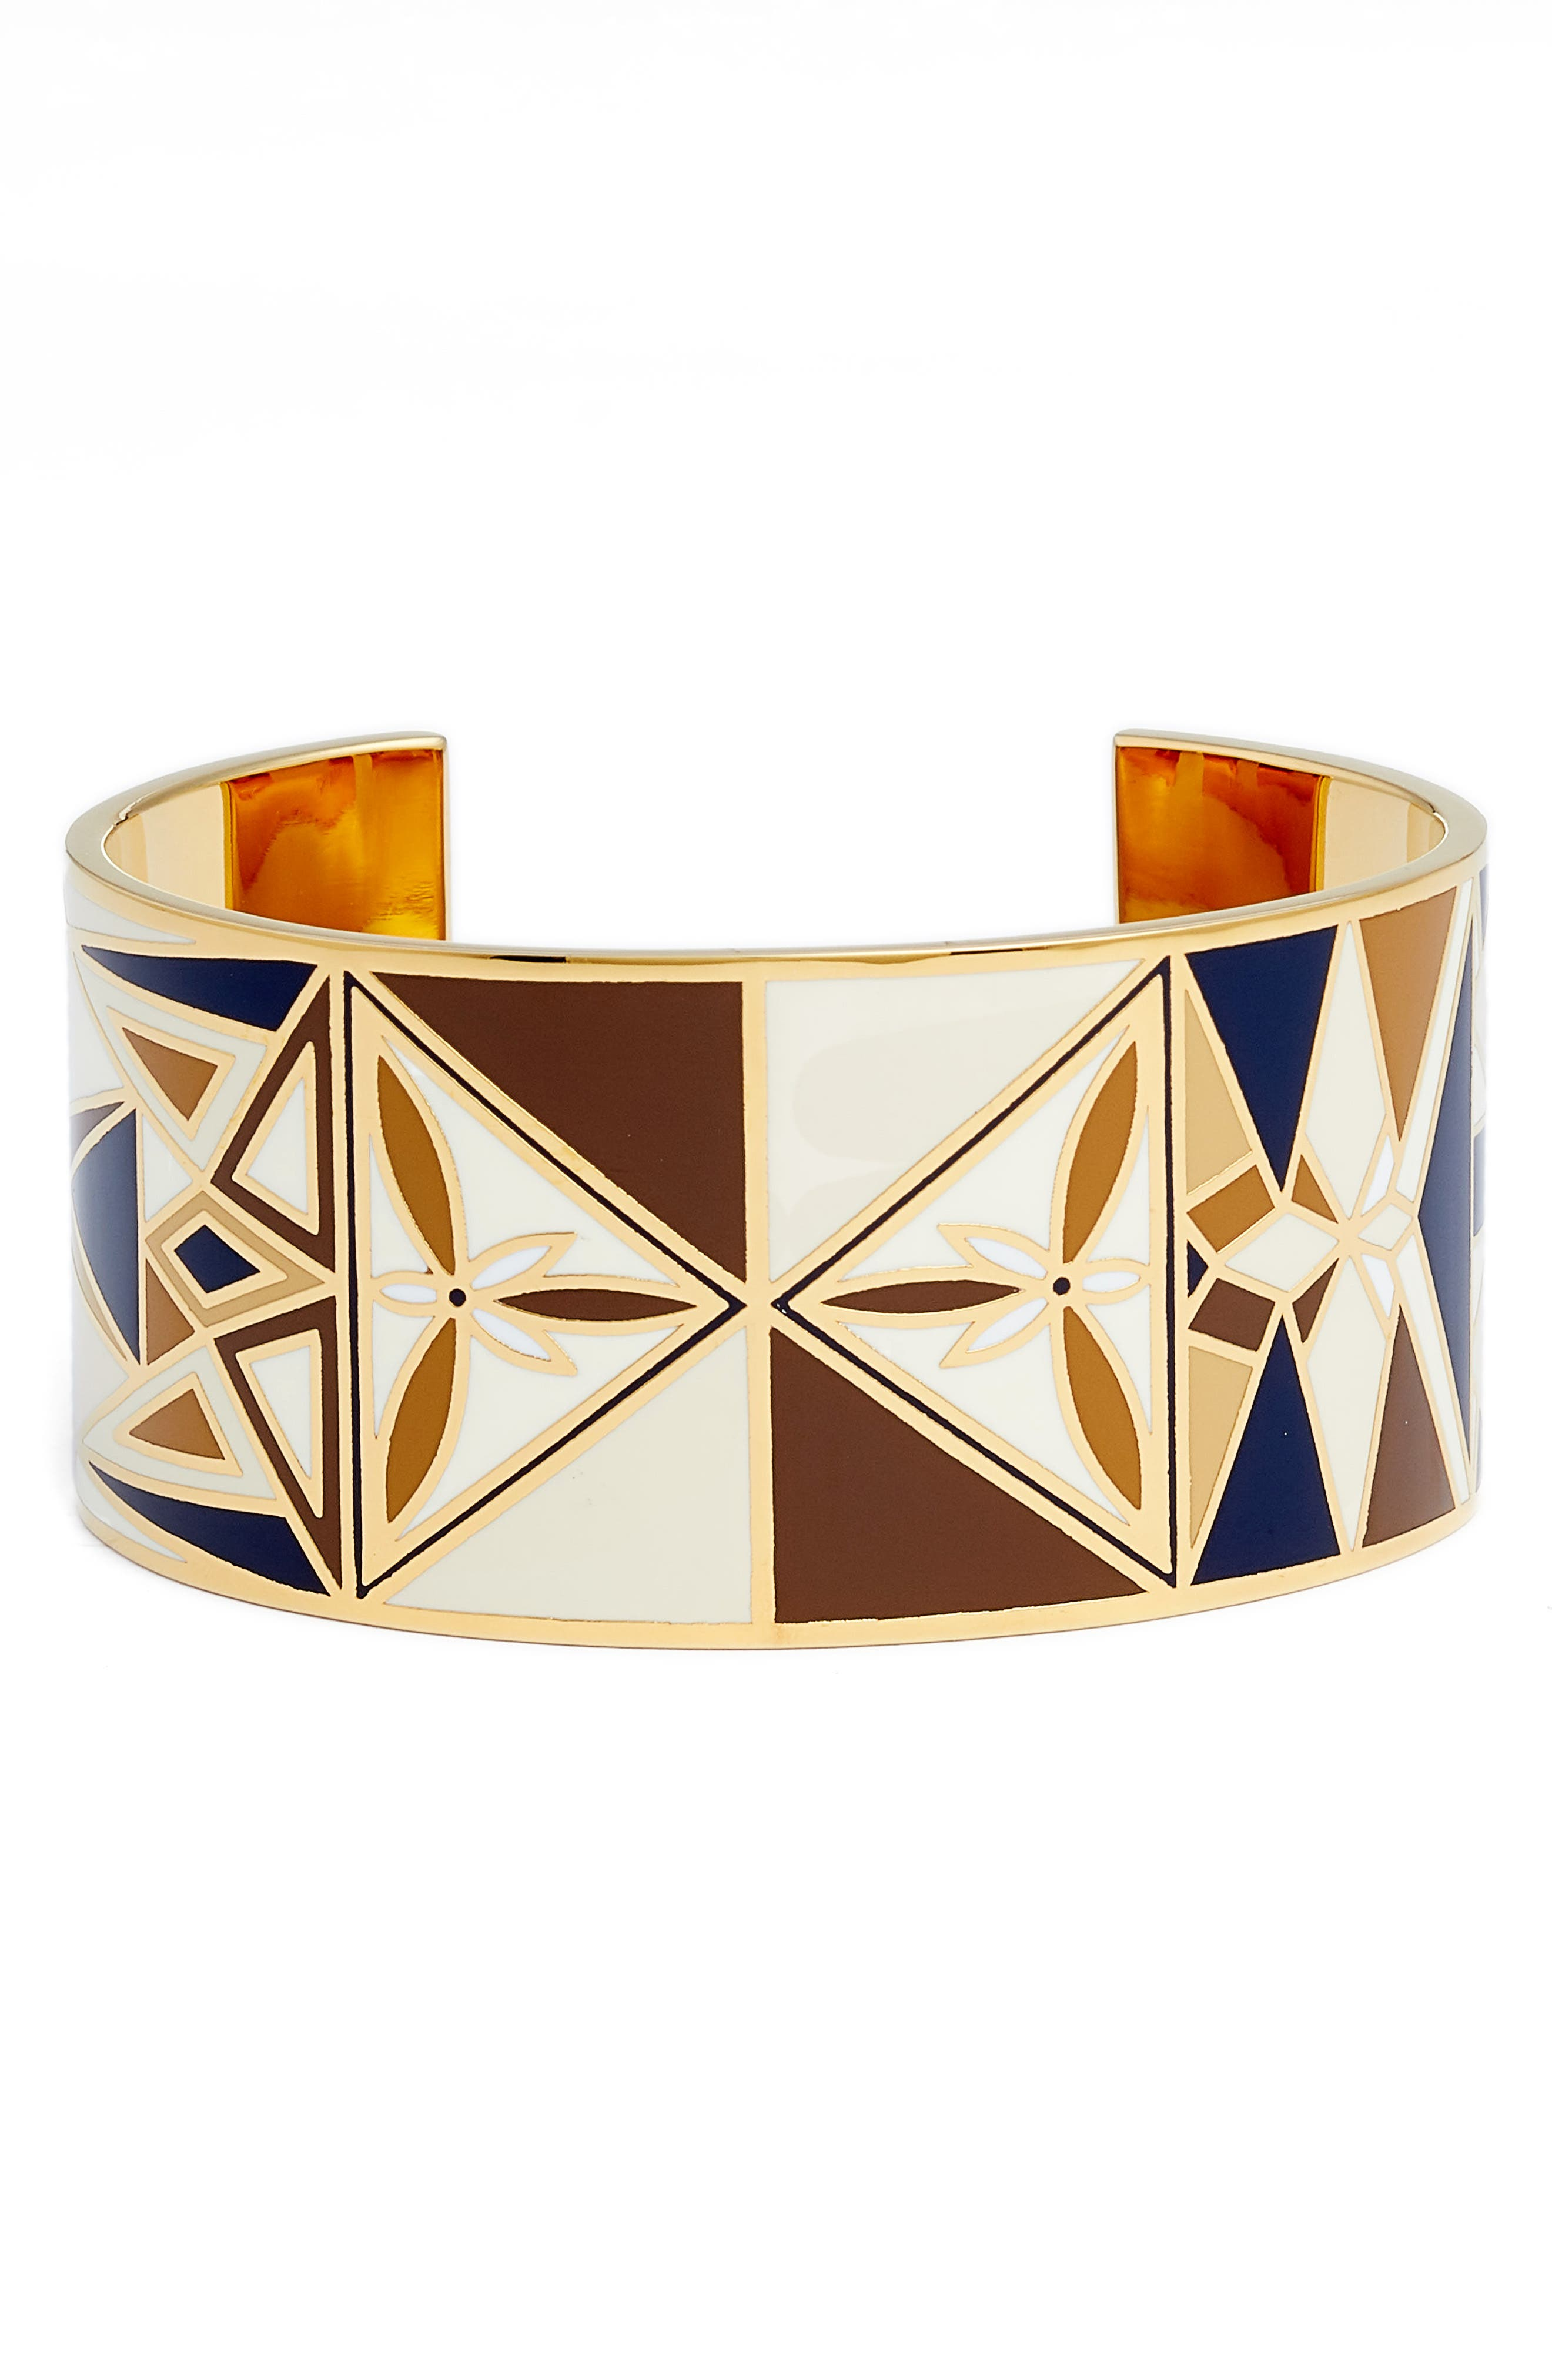 Alternate Image 1 Selected - Tory Burch Kaleidescope Enamel Cuff